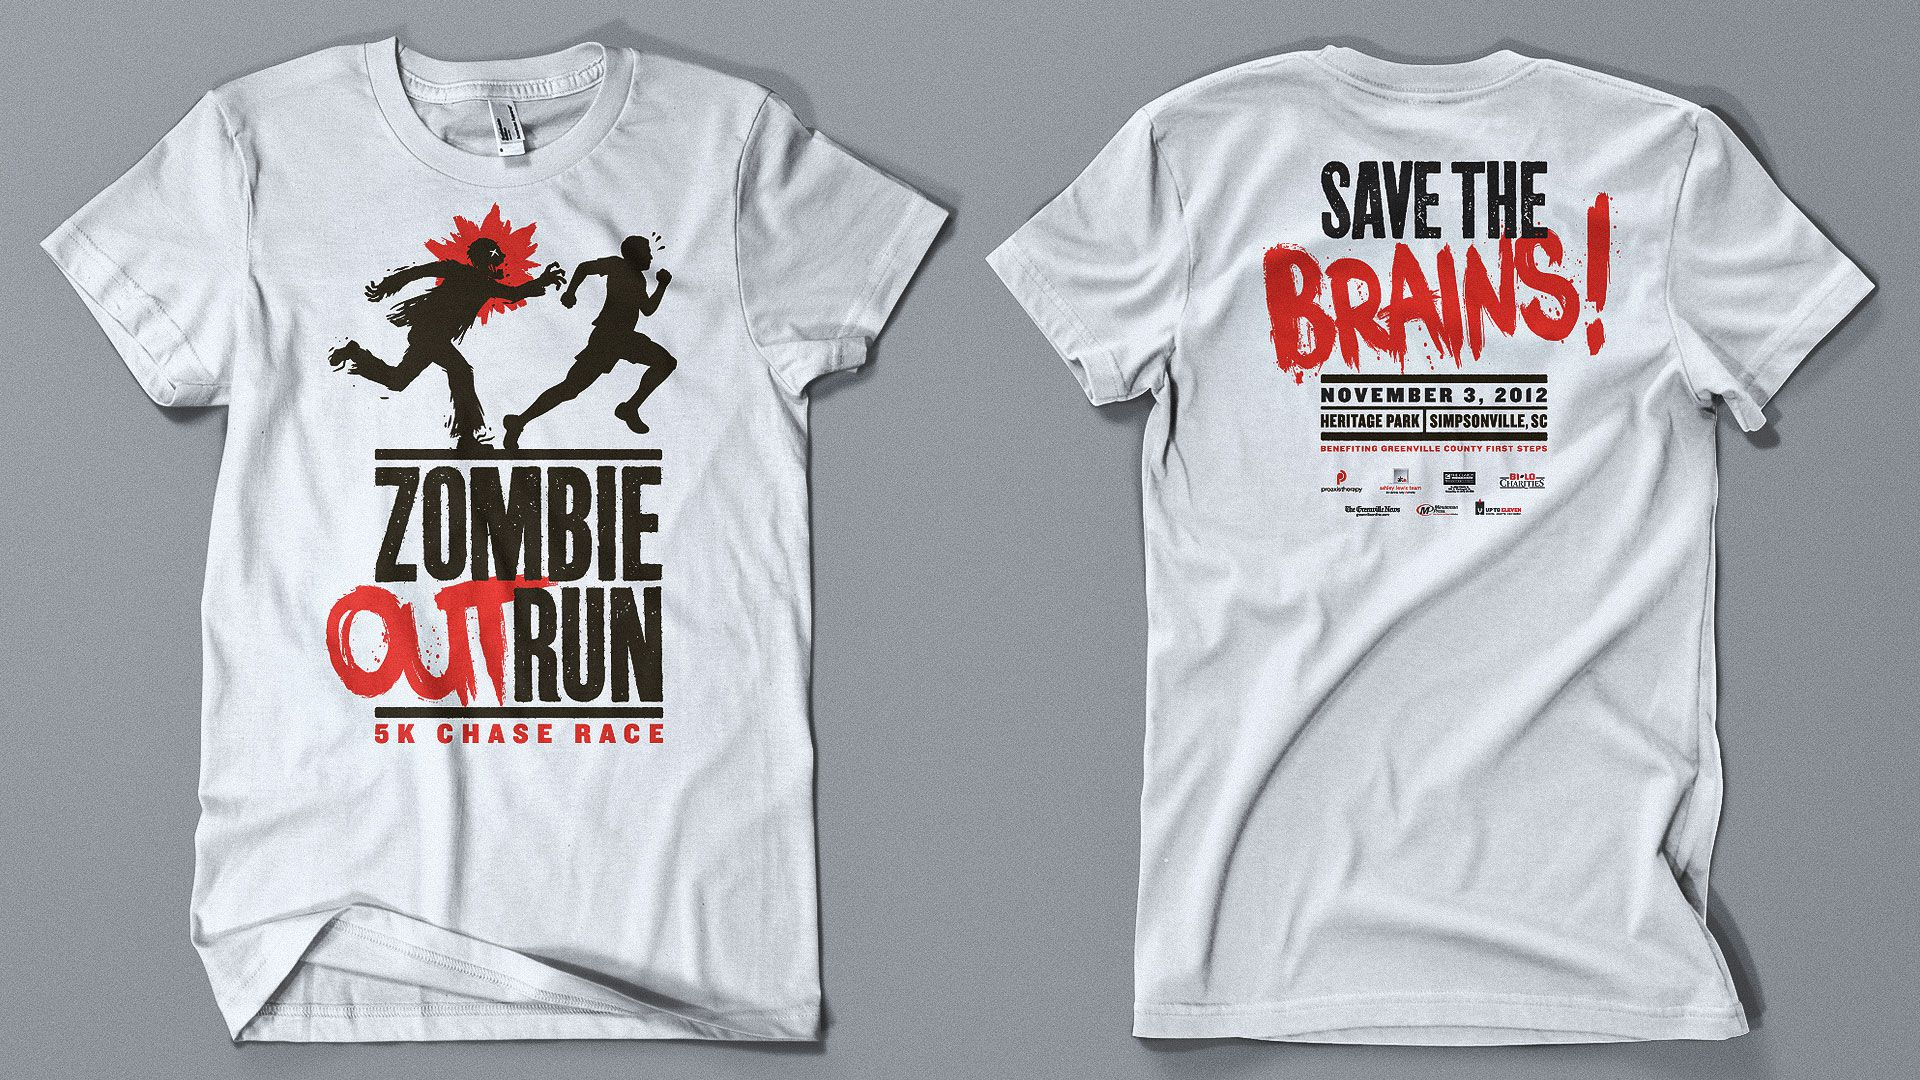 Zombie Outrun 5k Chase Race Justin Gammon Design